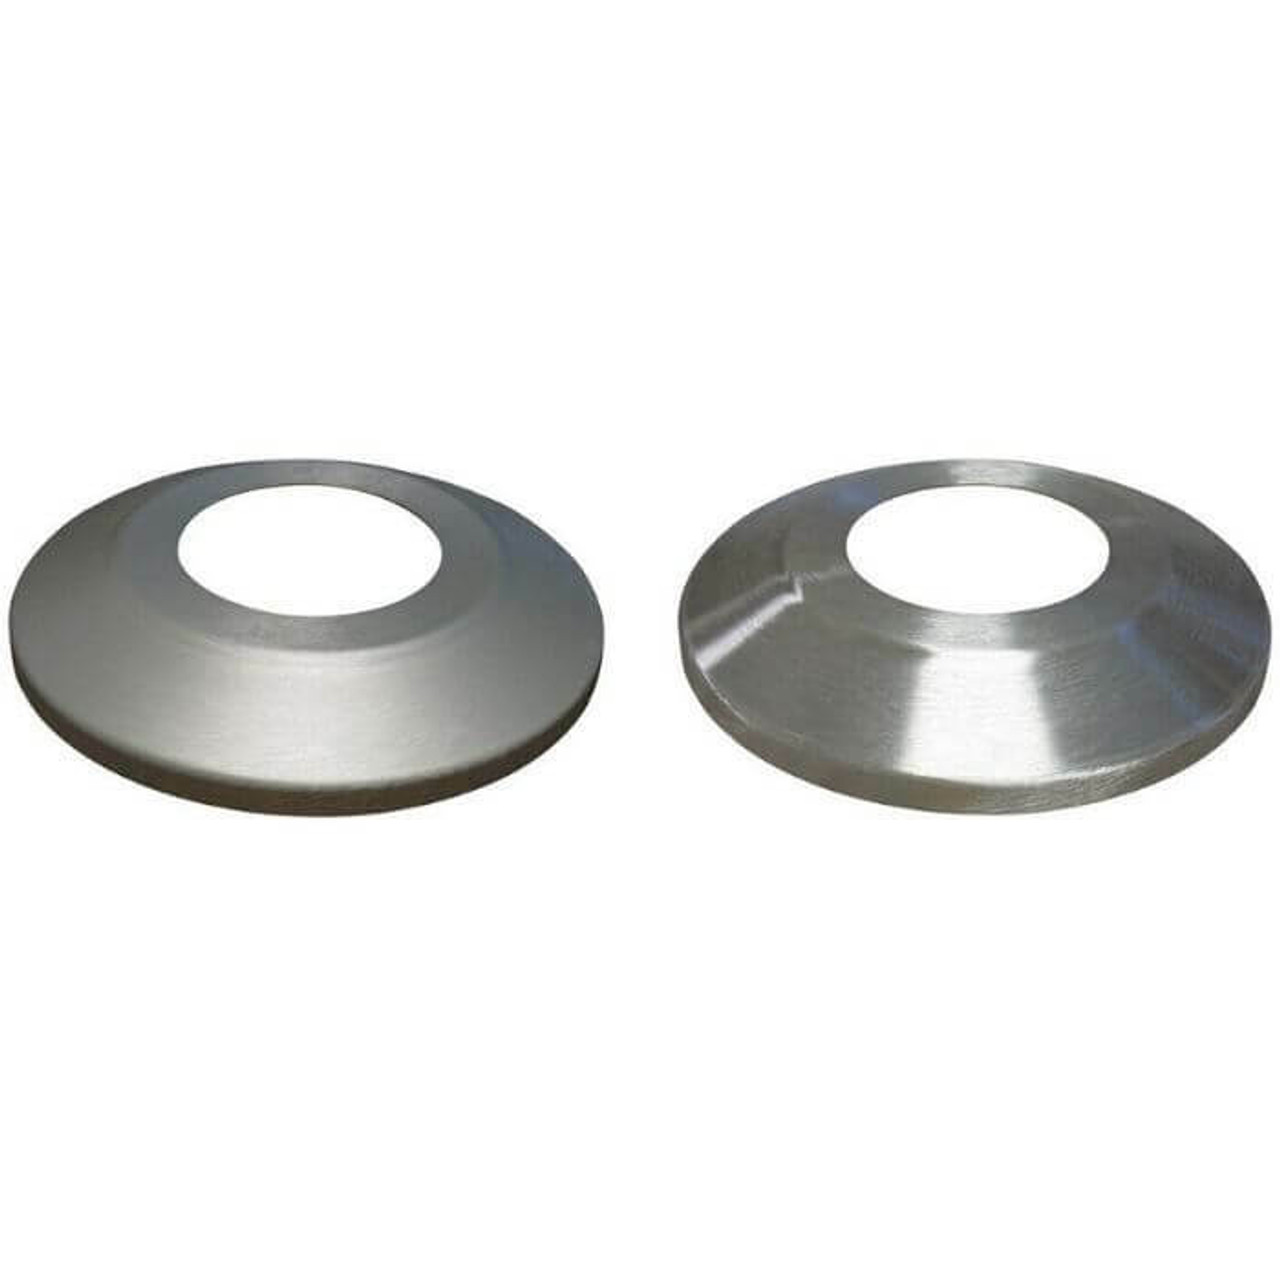 Two round pieces of aluminum with holes in them. Flash collars cover the base of a flagpole, where it was buried in the ground, to make it more attractive. On has a matte finish and the other a glossy.